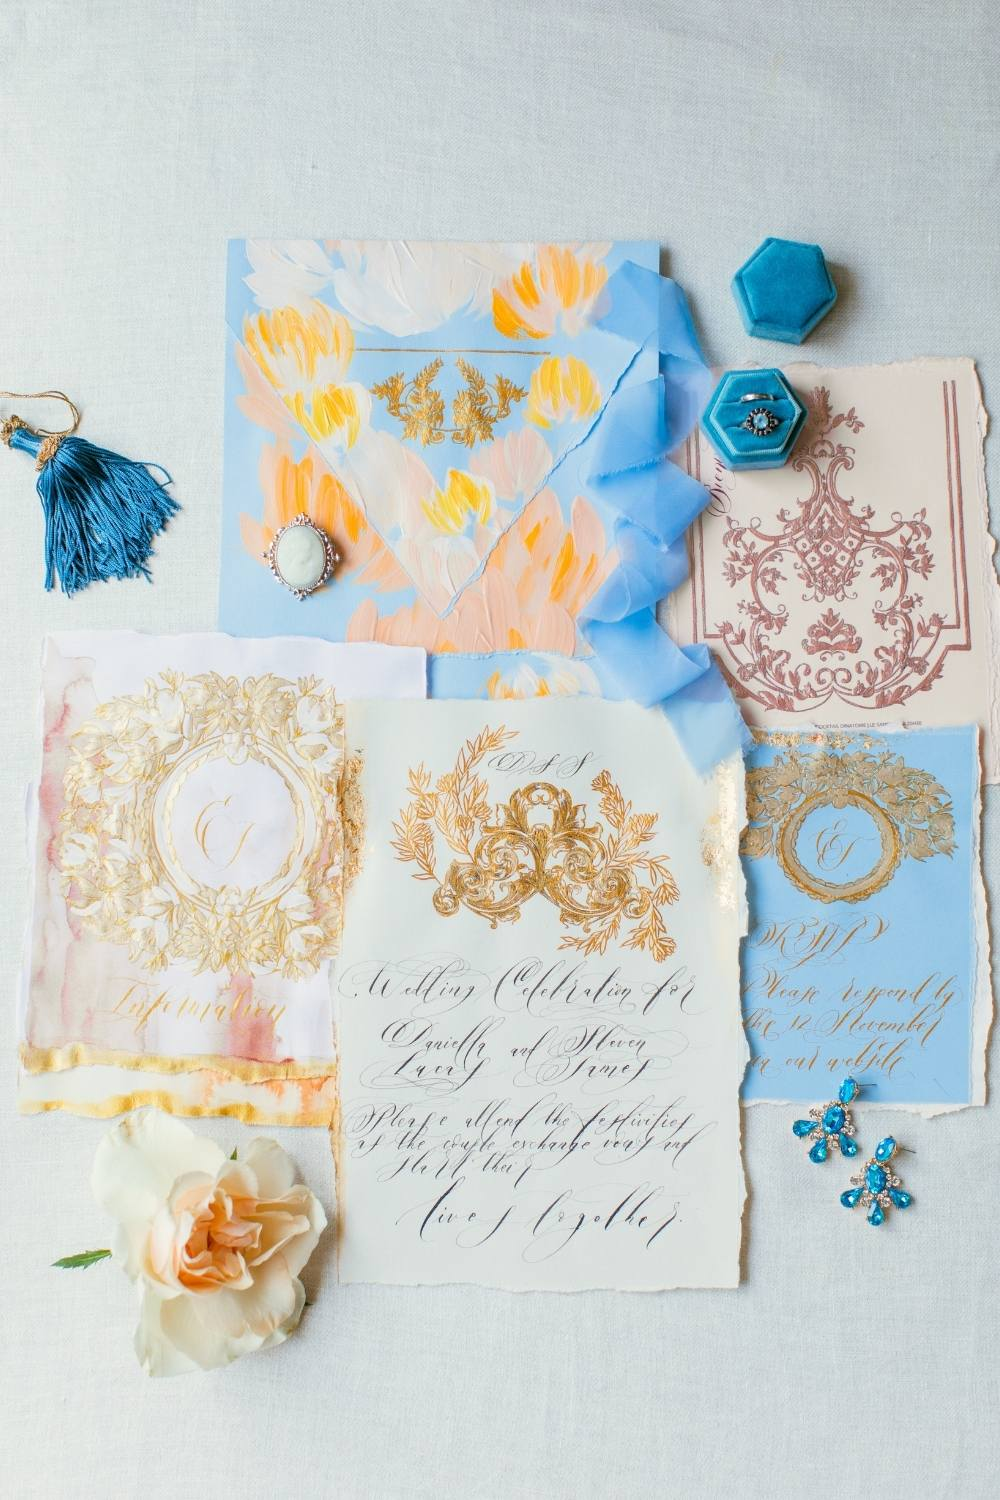 Lake Como wedding stationery, inspired by blue, gold and blush hues